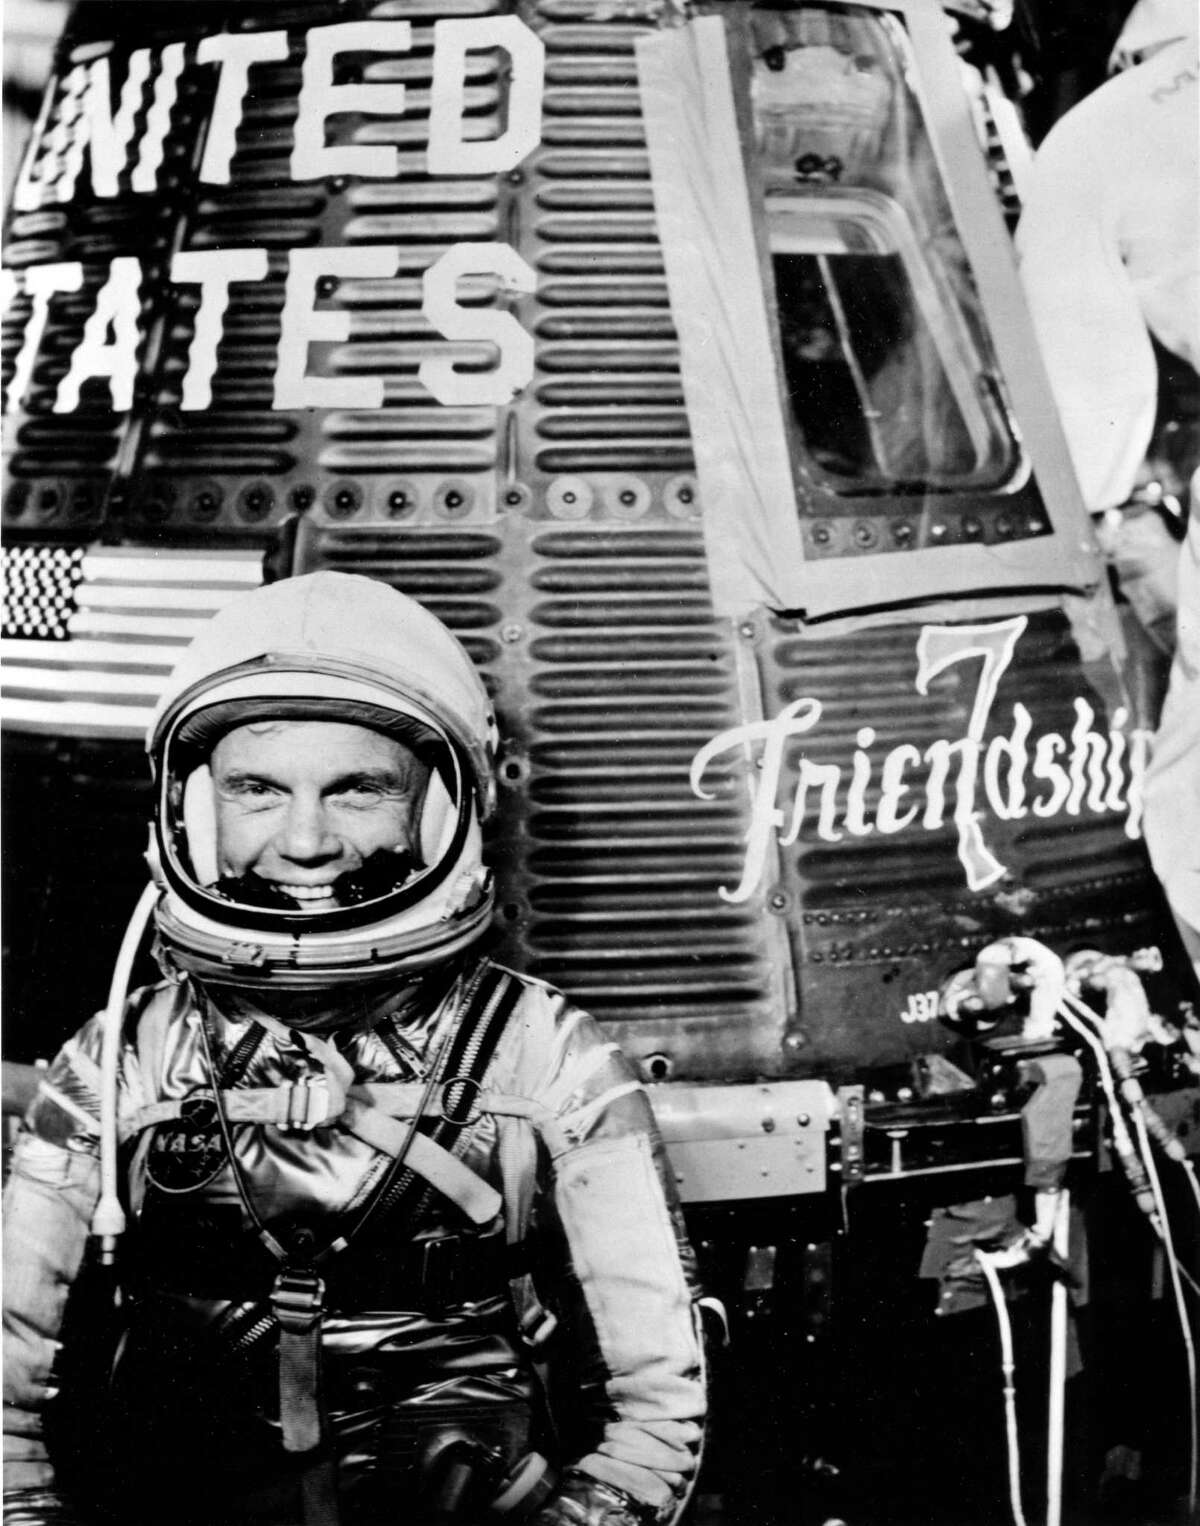 John Glenn with his Mercury space capsule, Friendship 7, in an undated handout photo. Glenn, who was hailed as a national hero and a symbol of the space age as the first American to orbit Earth, then became a national political figure for 24 years in the Senate, died on Dec. 8, 2016. He was 95. (NASA via the New York Times)